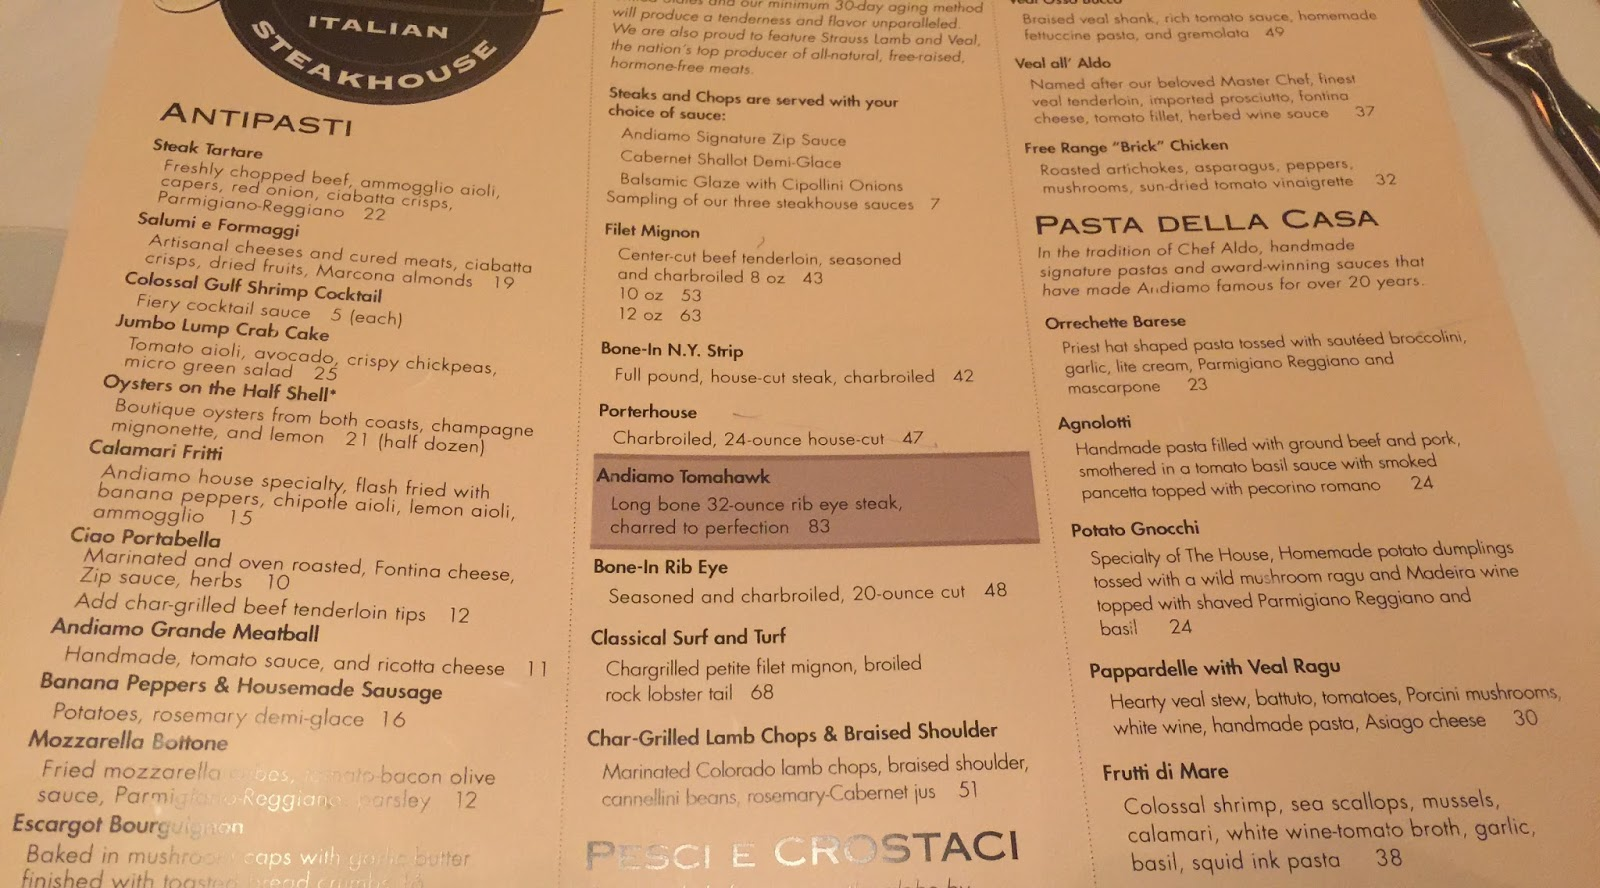 Prego Cucina Italiana Menu Taste Of Hawaii Andiamo Italian Steakhouse By Joe Vicari